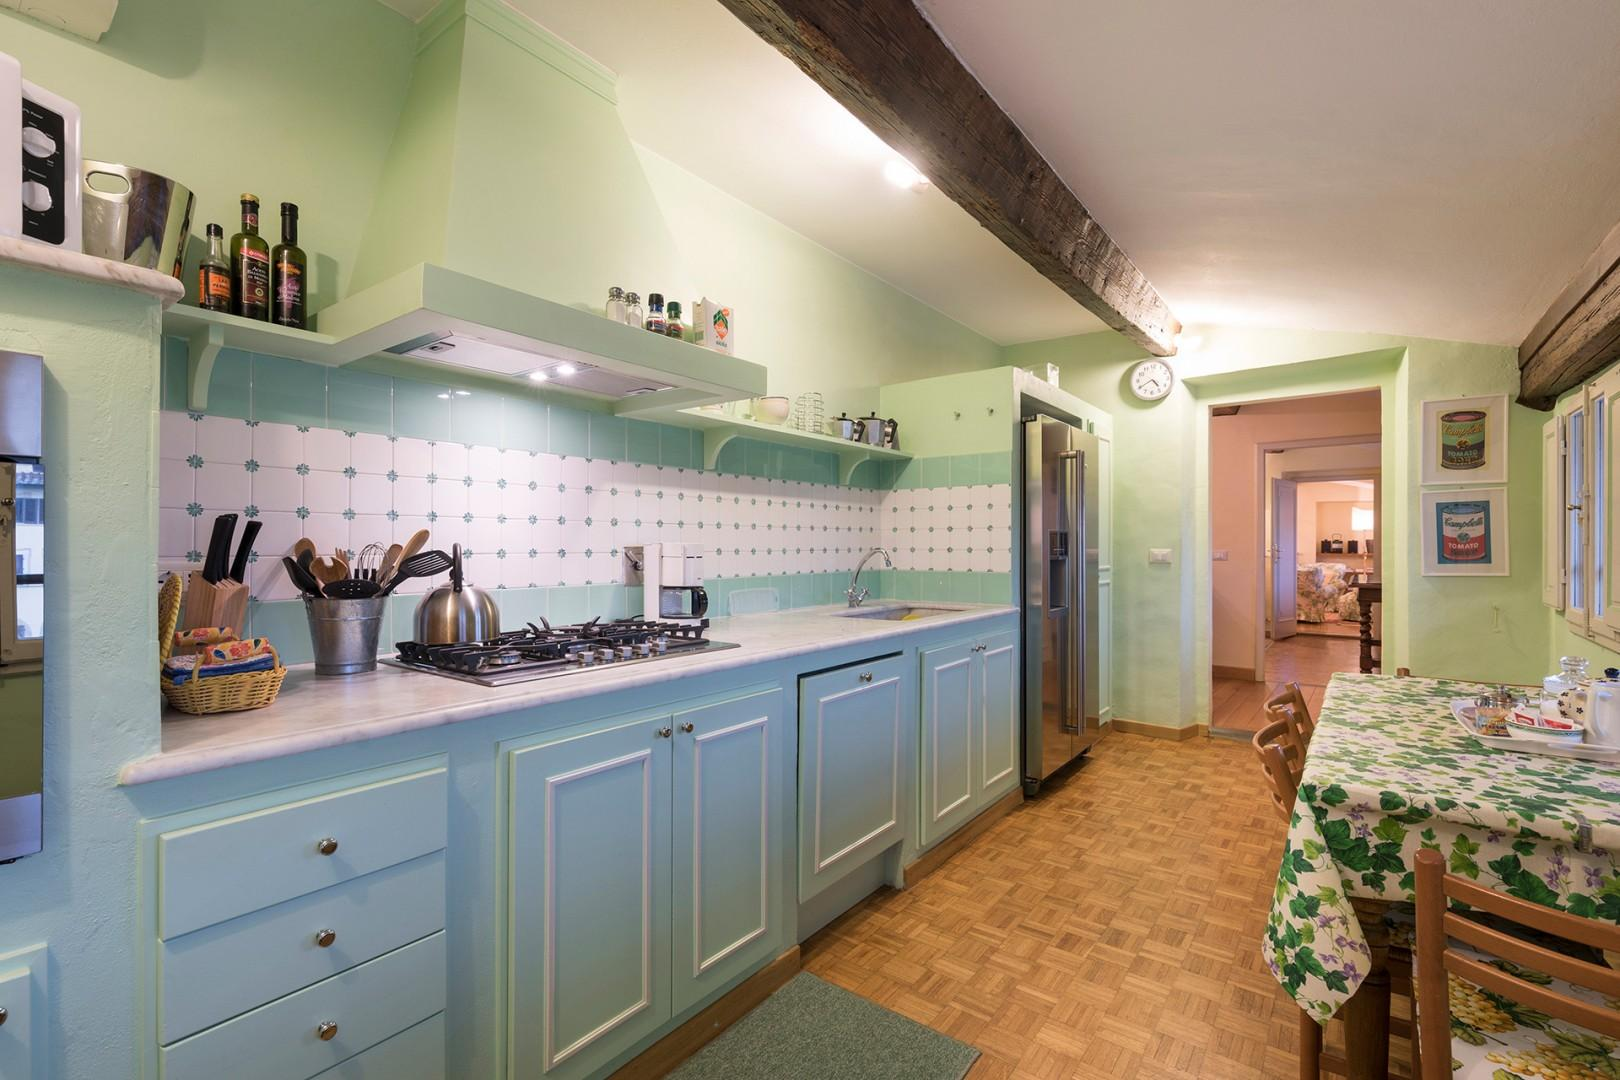 Kitchen is bright and cheerful and fully equipped with pots, pans, dishes.